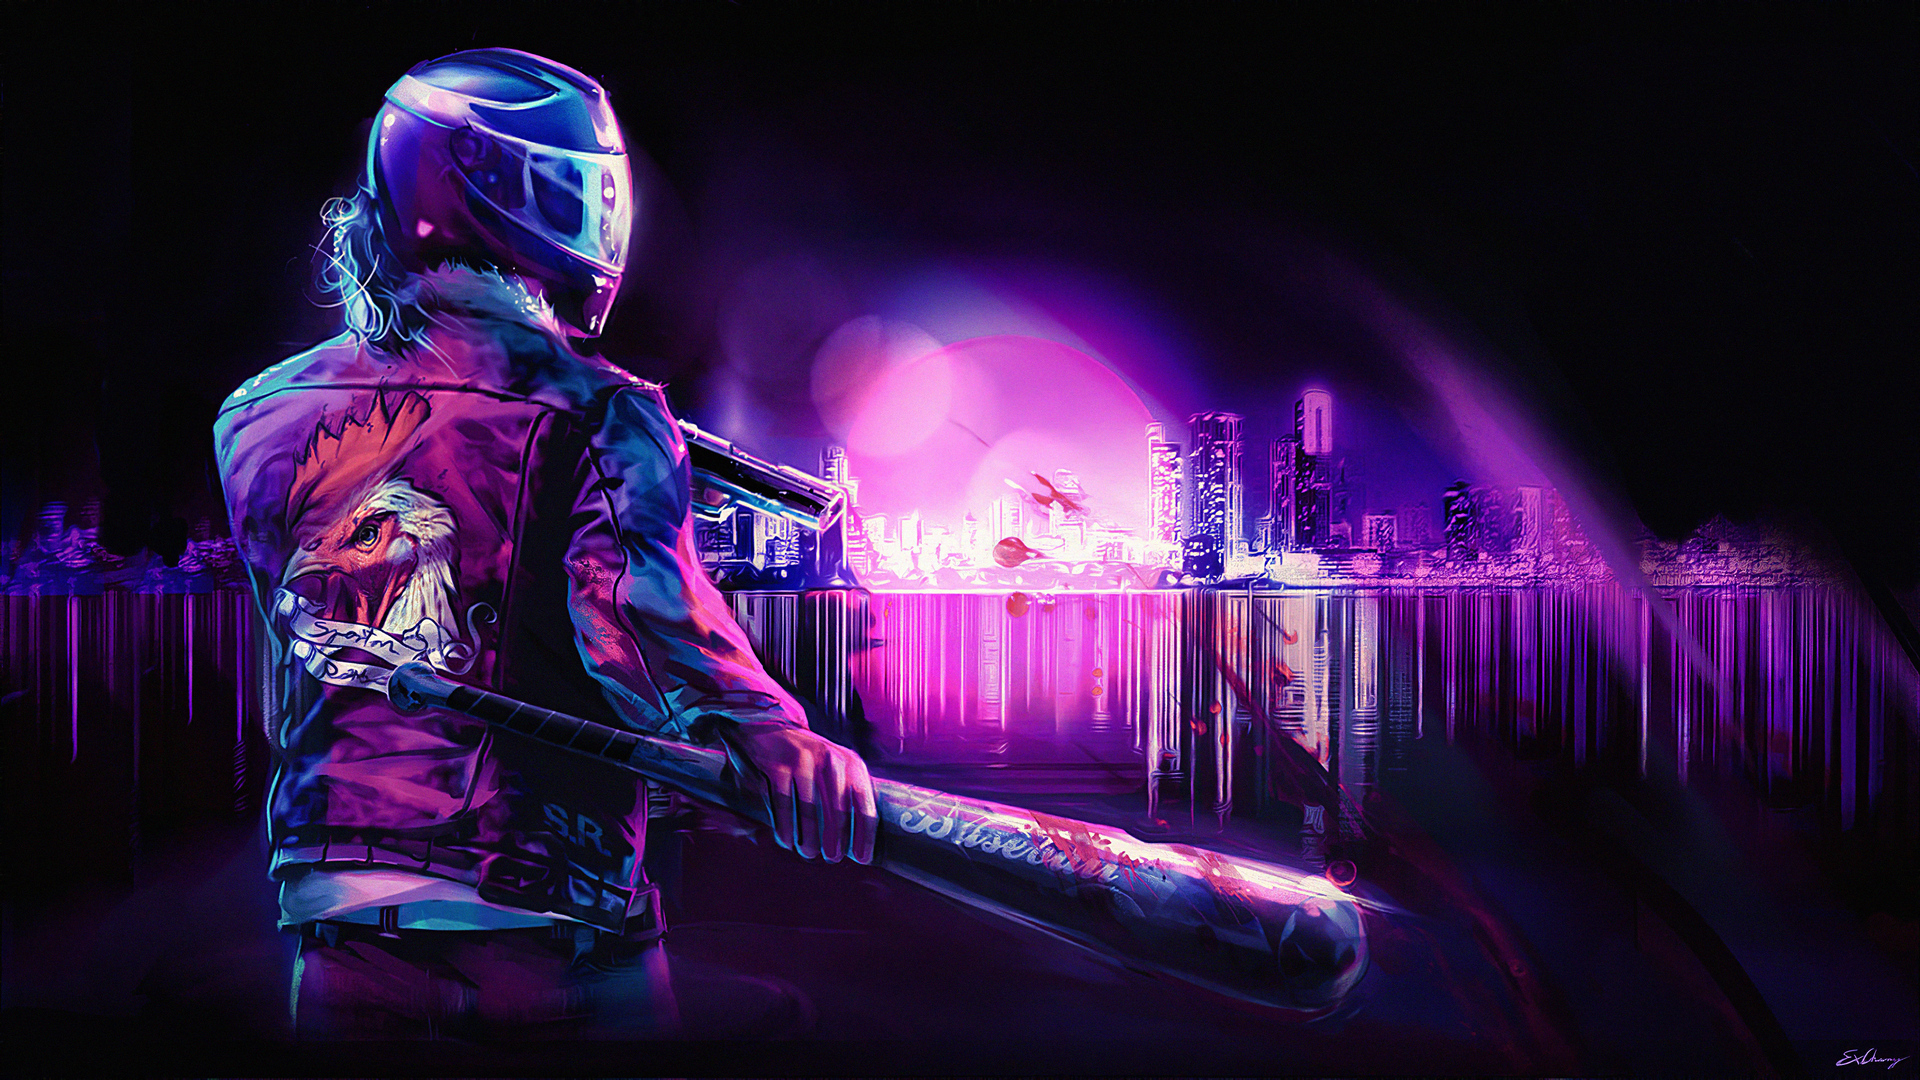 1920x1080 Vaporwave Violence 4k Laptop Full Hd 1080p Hd 4k Wallpapers Images Backgrounds Photos And Pictures